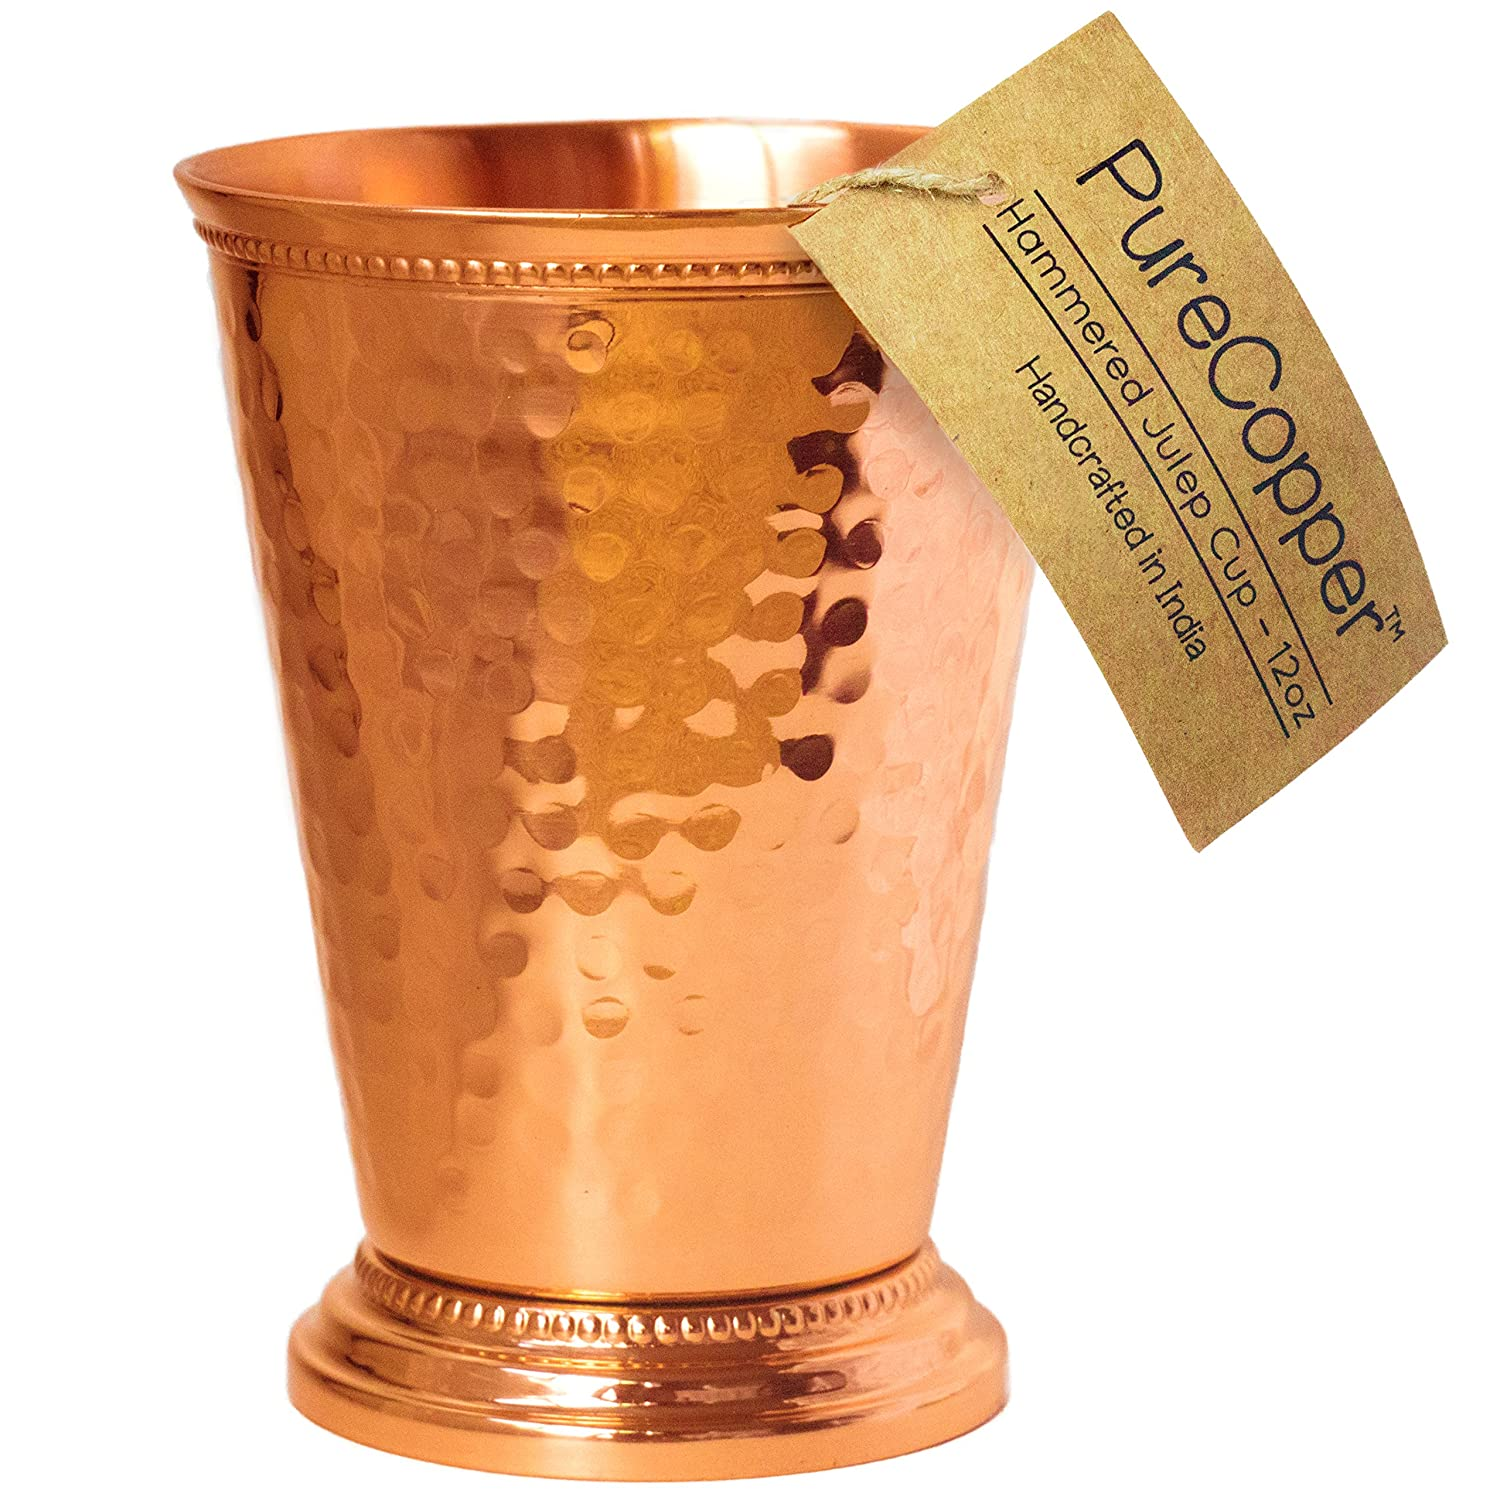 Mint Julep Cup - 100% Copper, Hammered by Hand - 4.5